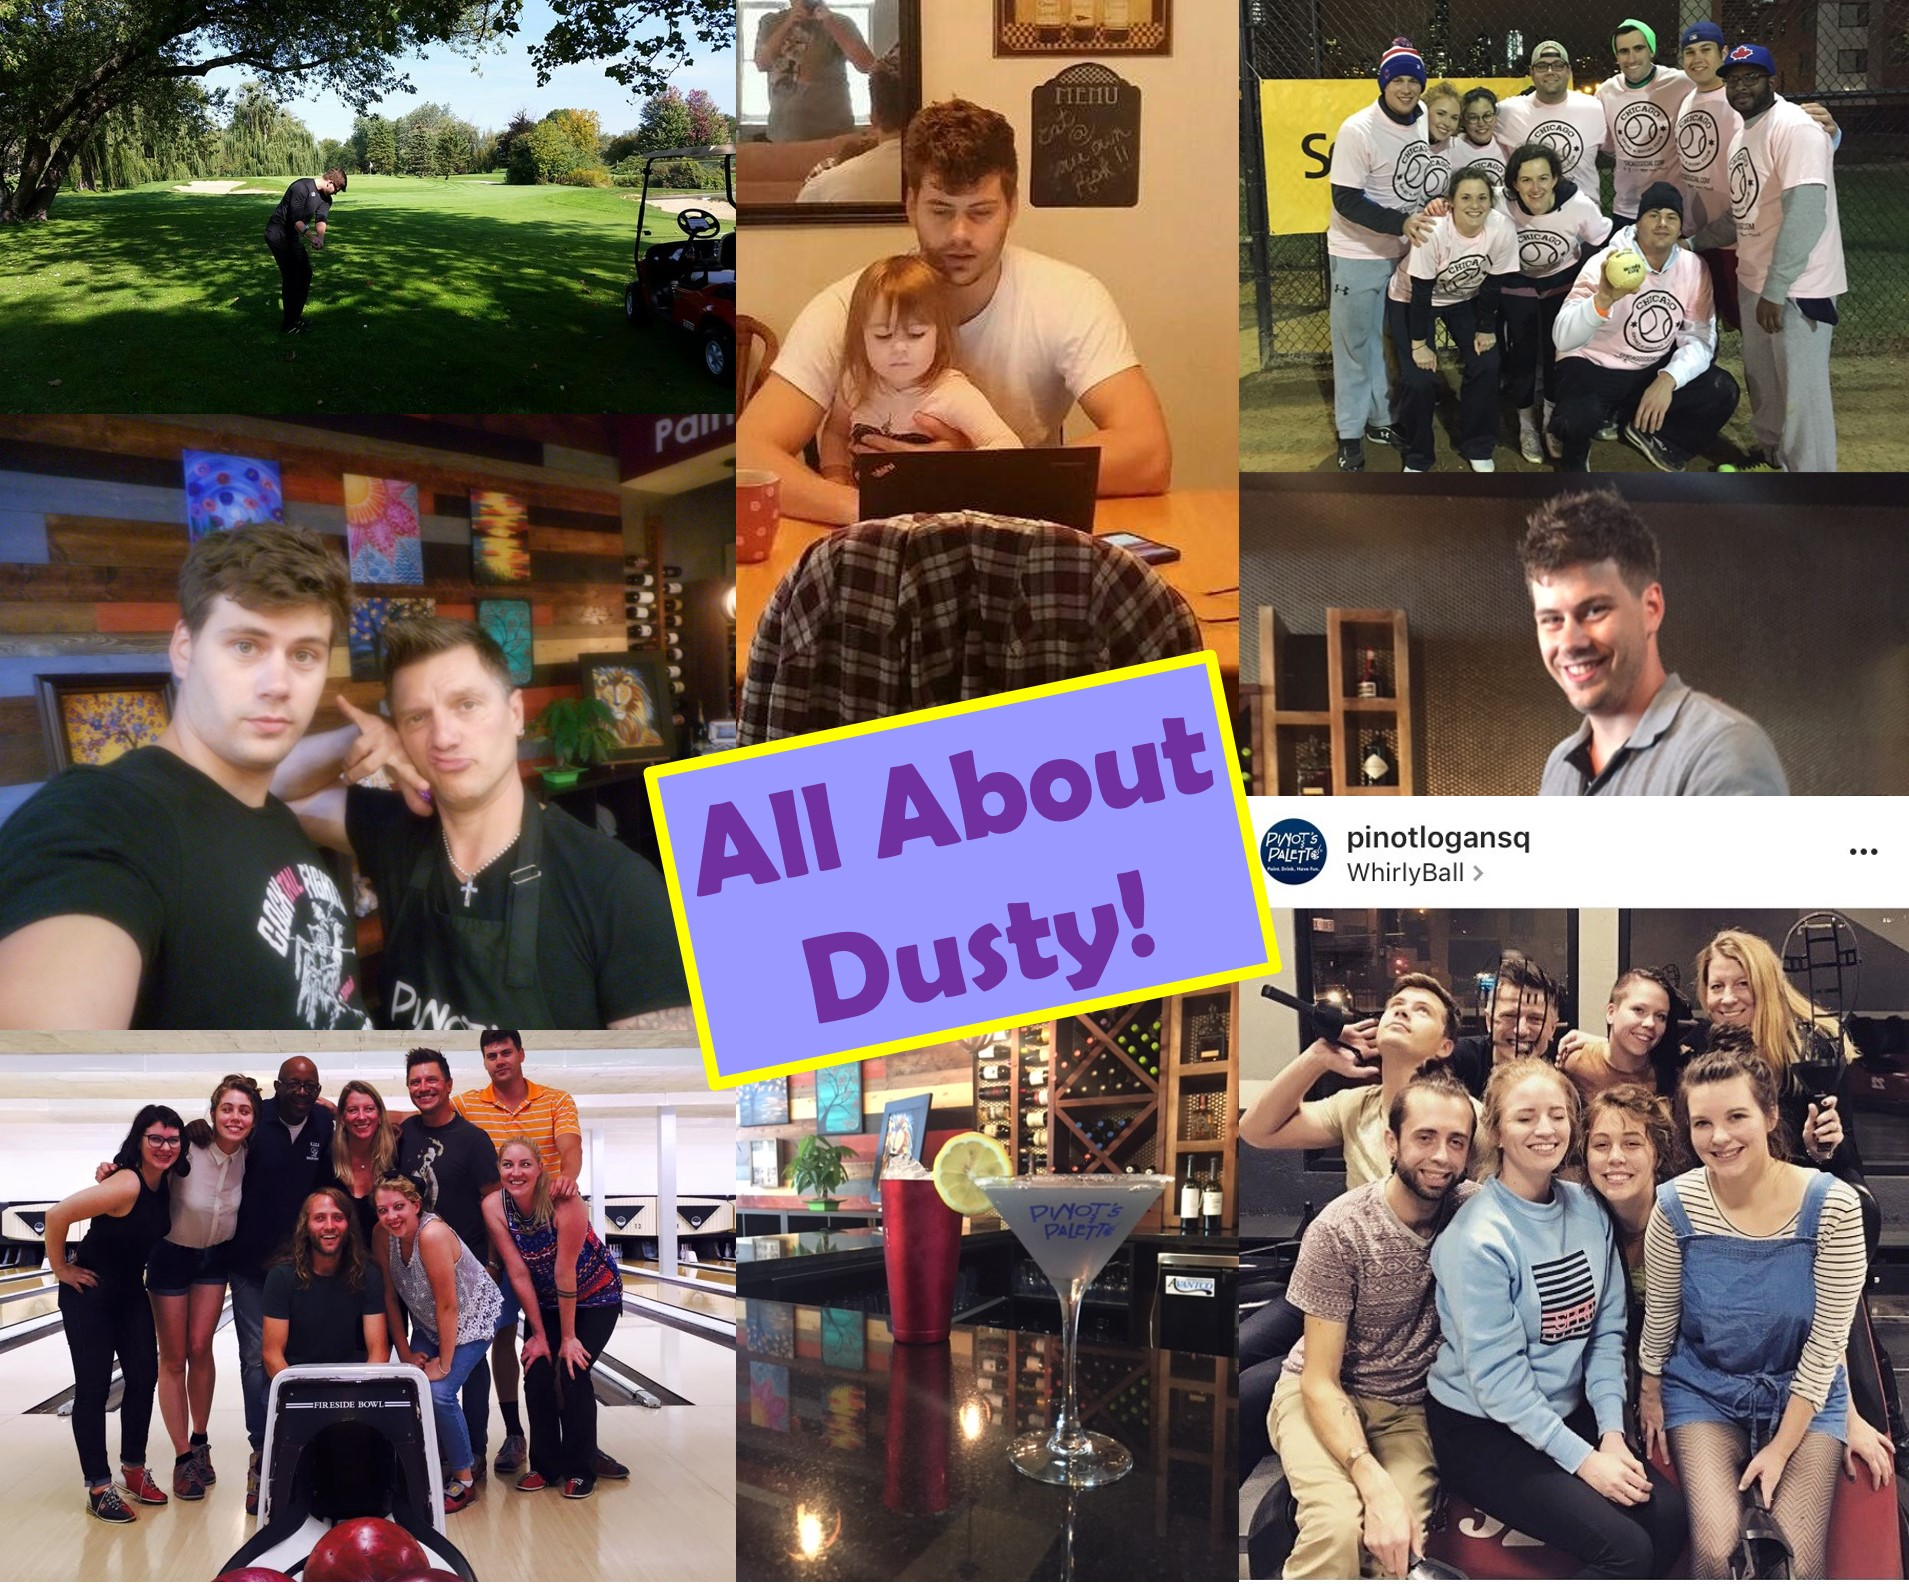 All About Dusty!